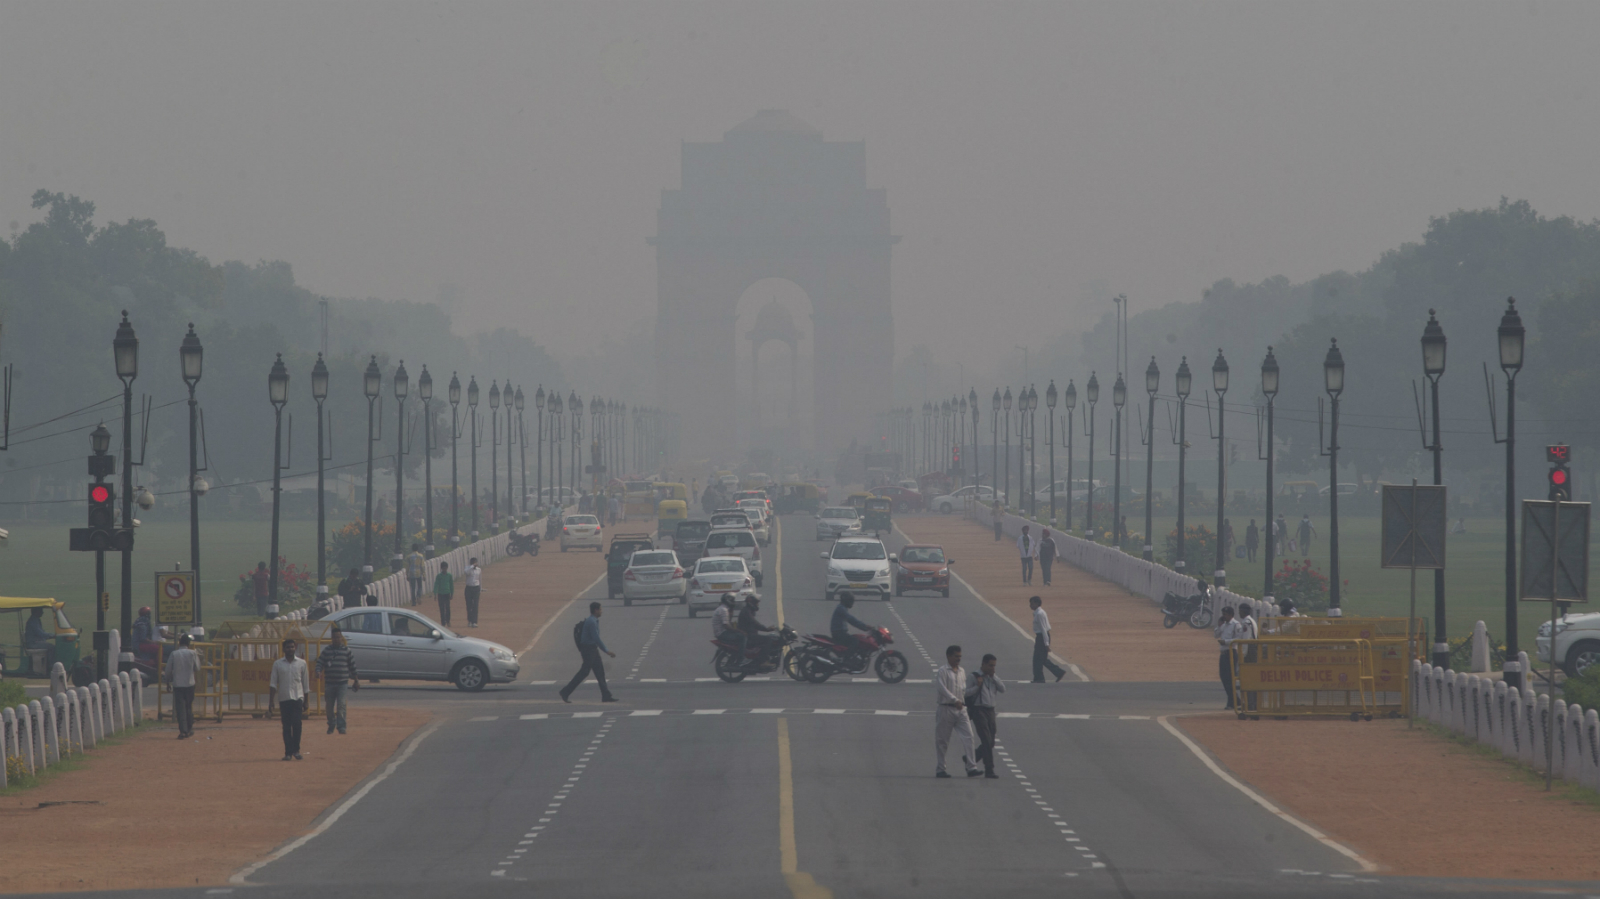 India-Pollution-Environment-New Delhi-Congestion